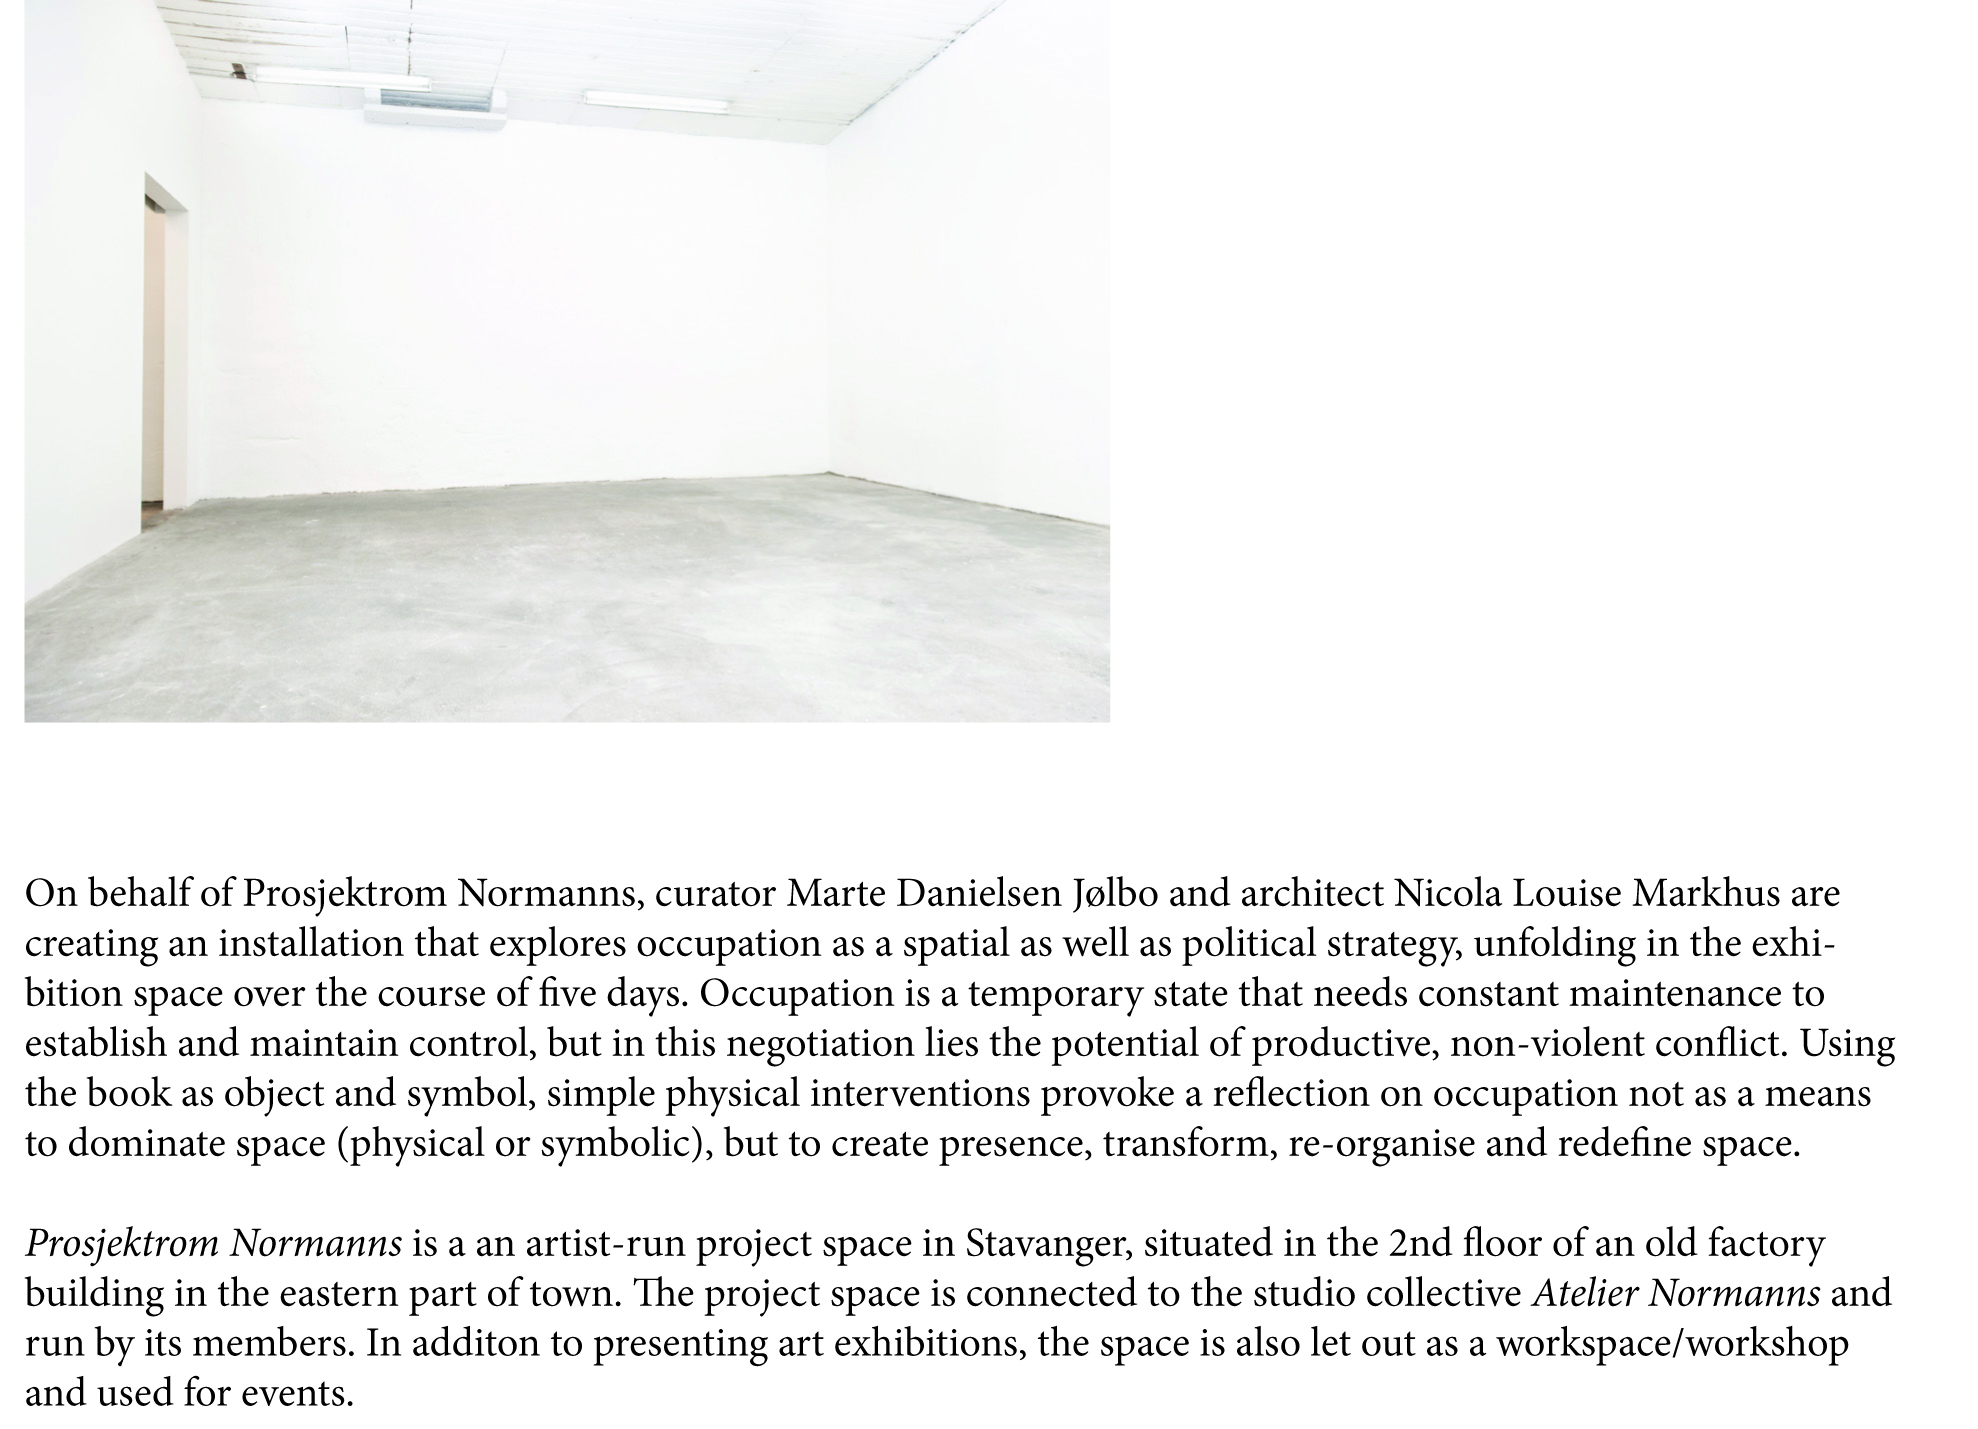 Curatorial-Statement_final-2-copy.jpg